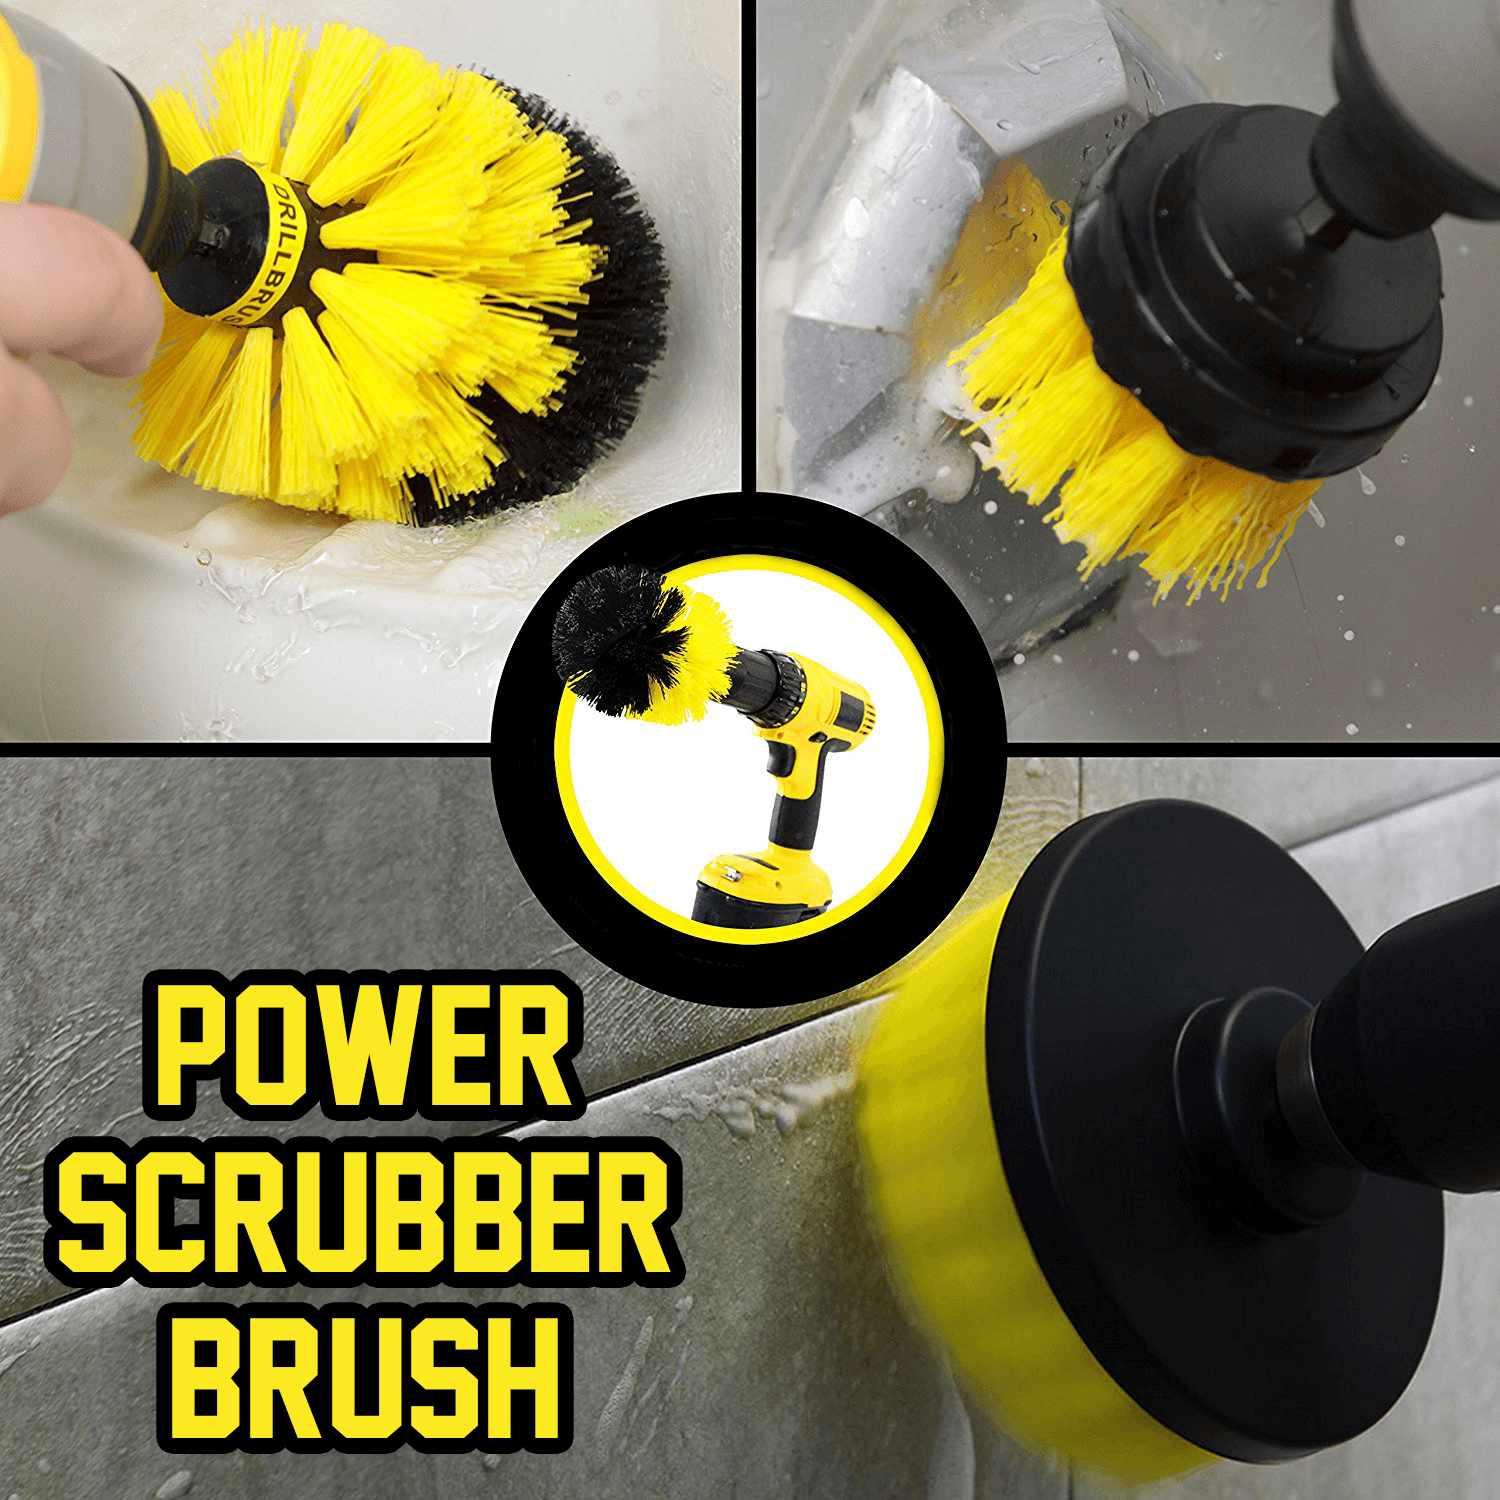 Power Scrubber Brush (Set of 3) - esfranki